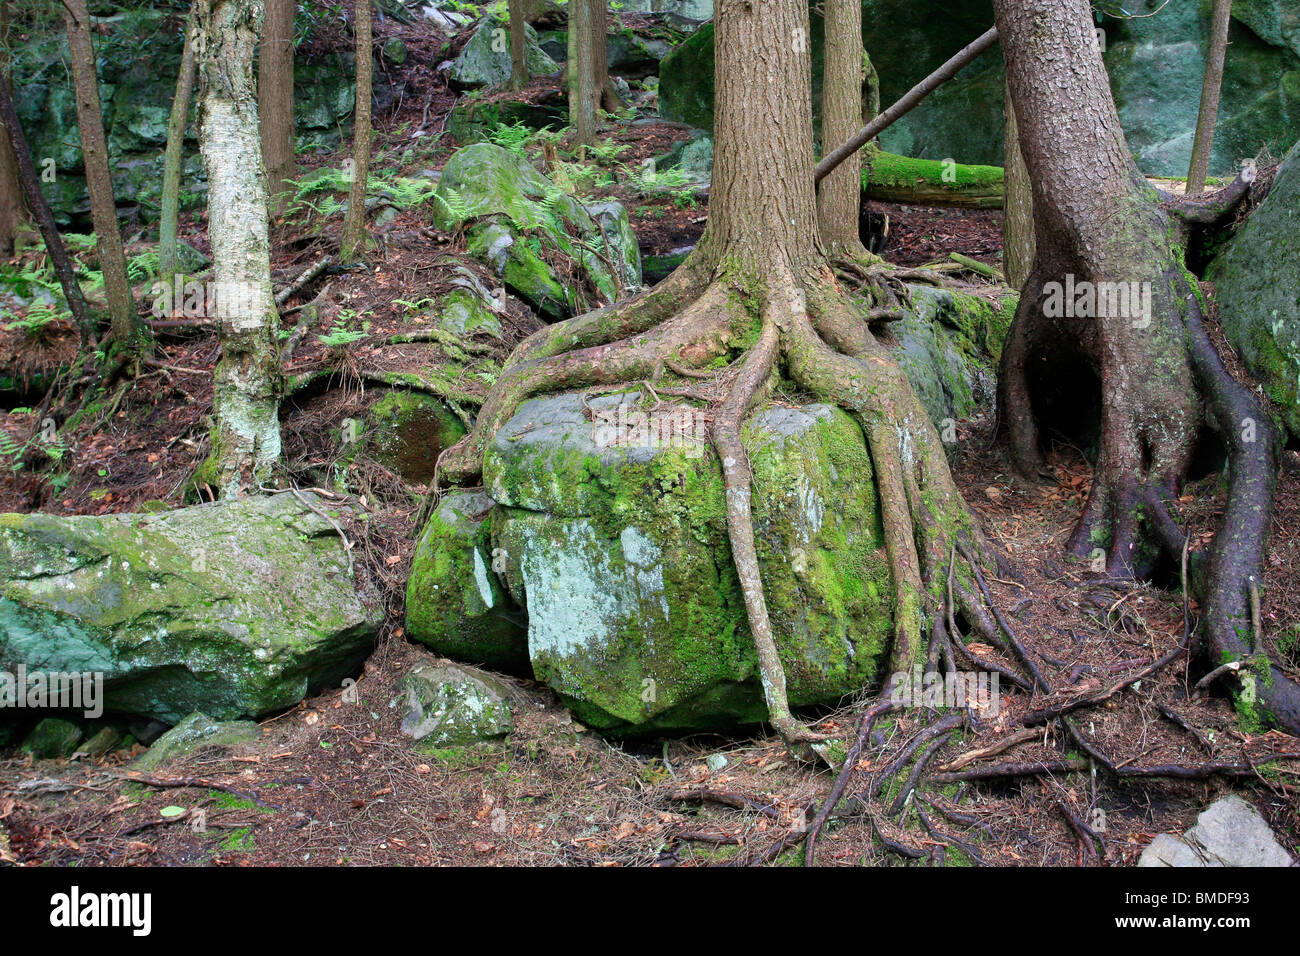 Tree Roots Over Rock Stock Photo Royalty Free Image